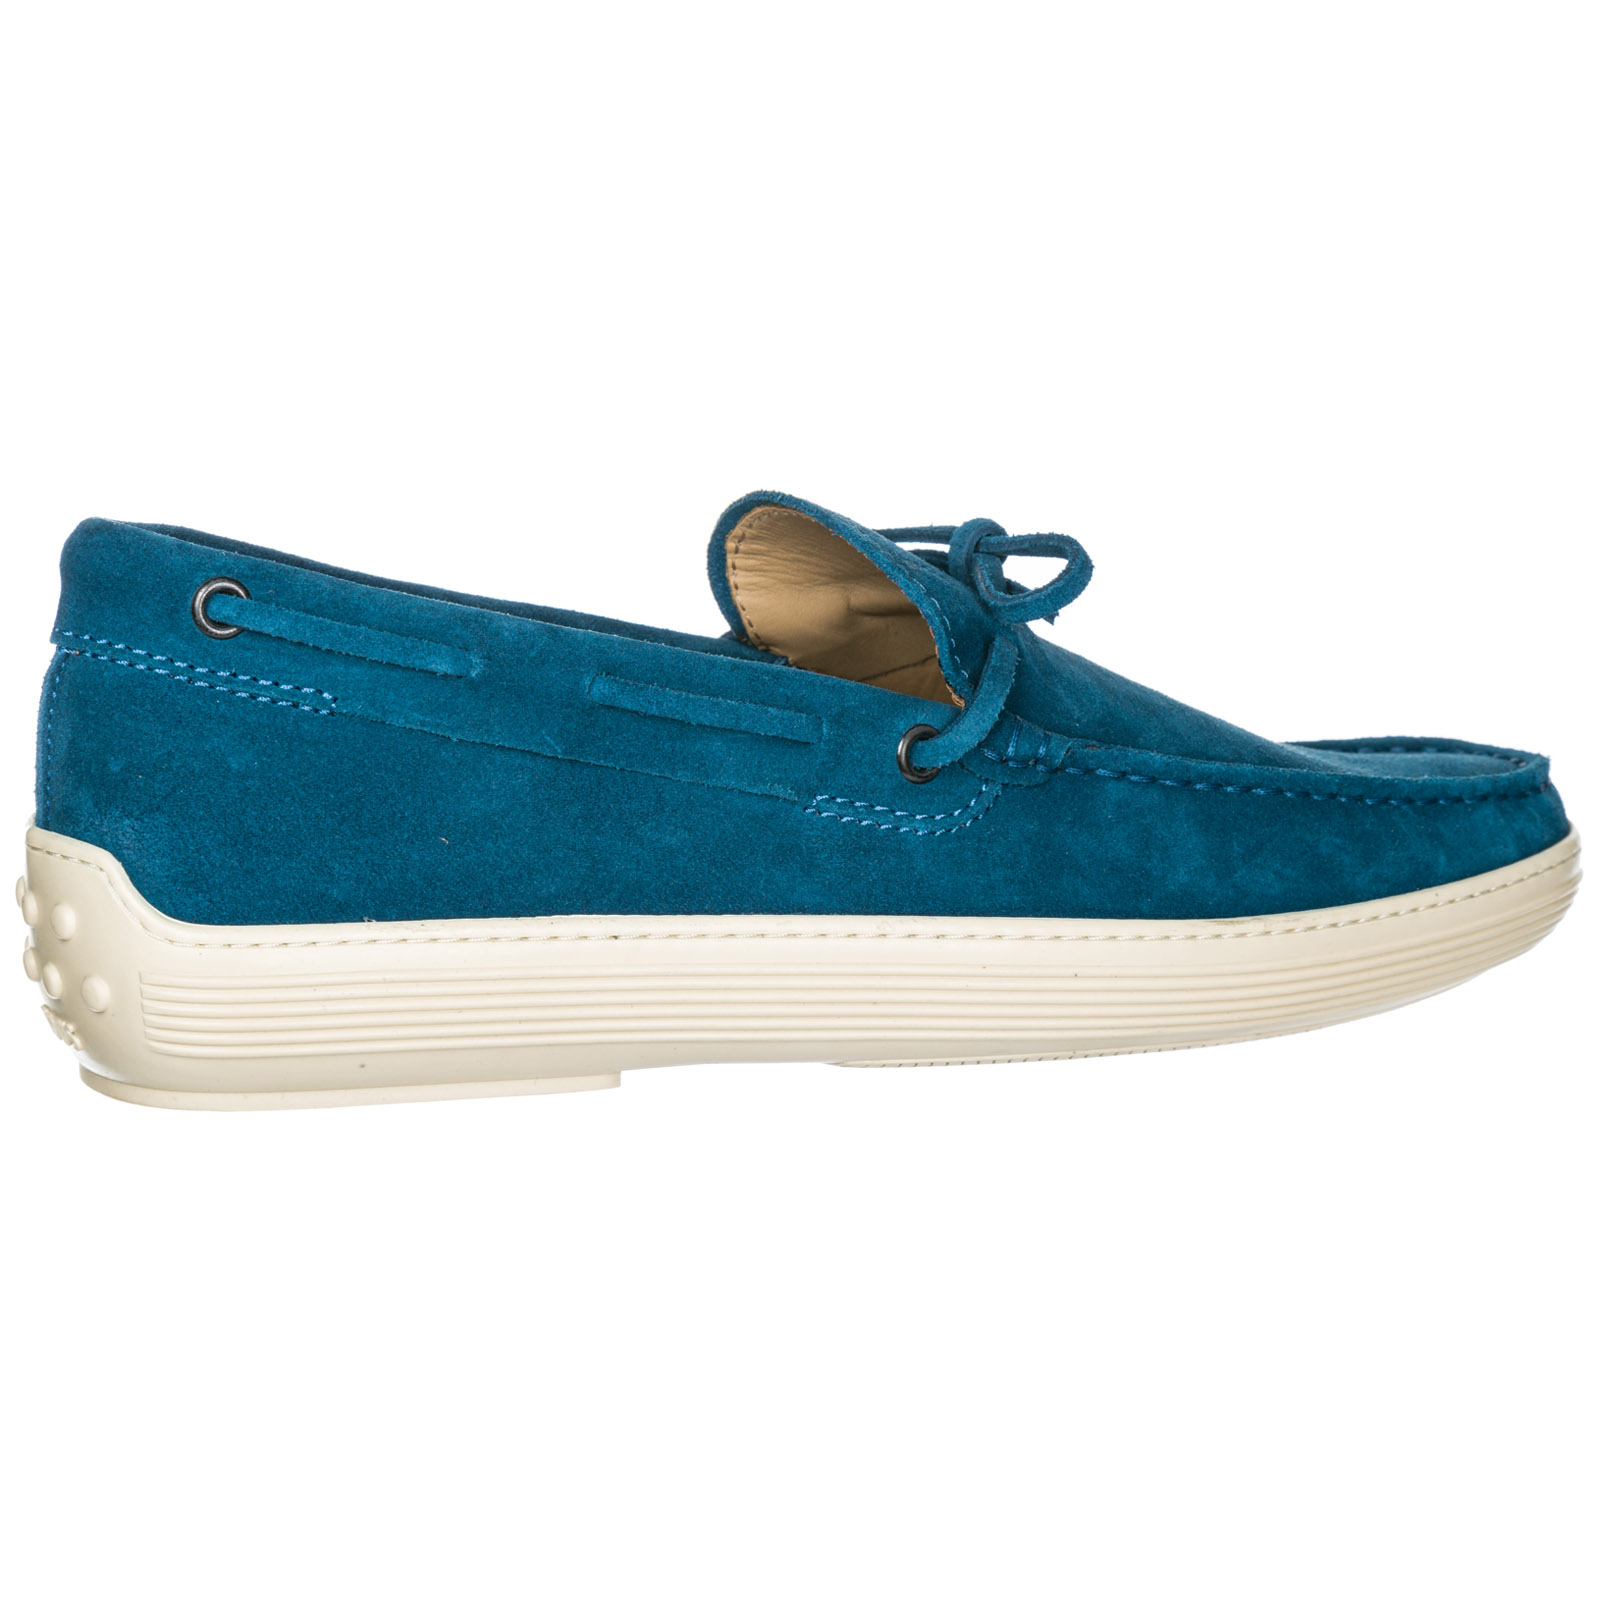 Wildleder mokassins herren slipper laccetto